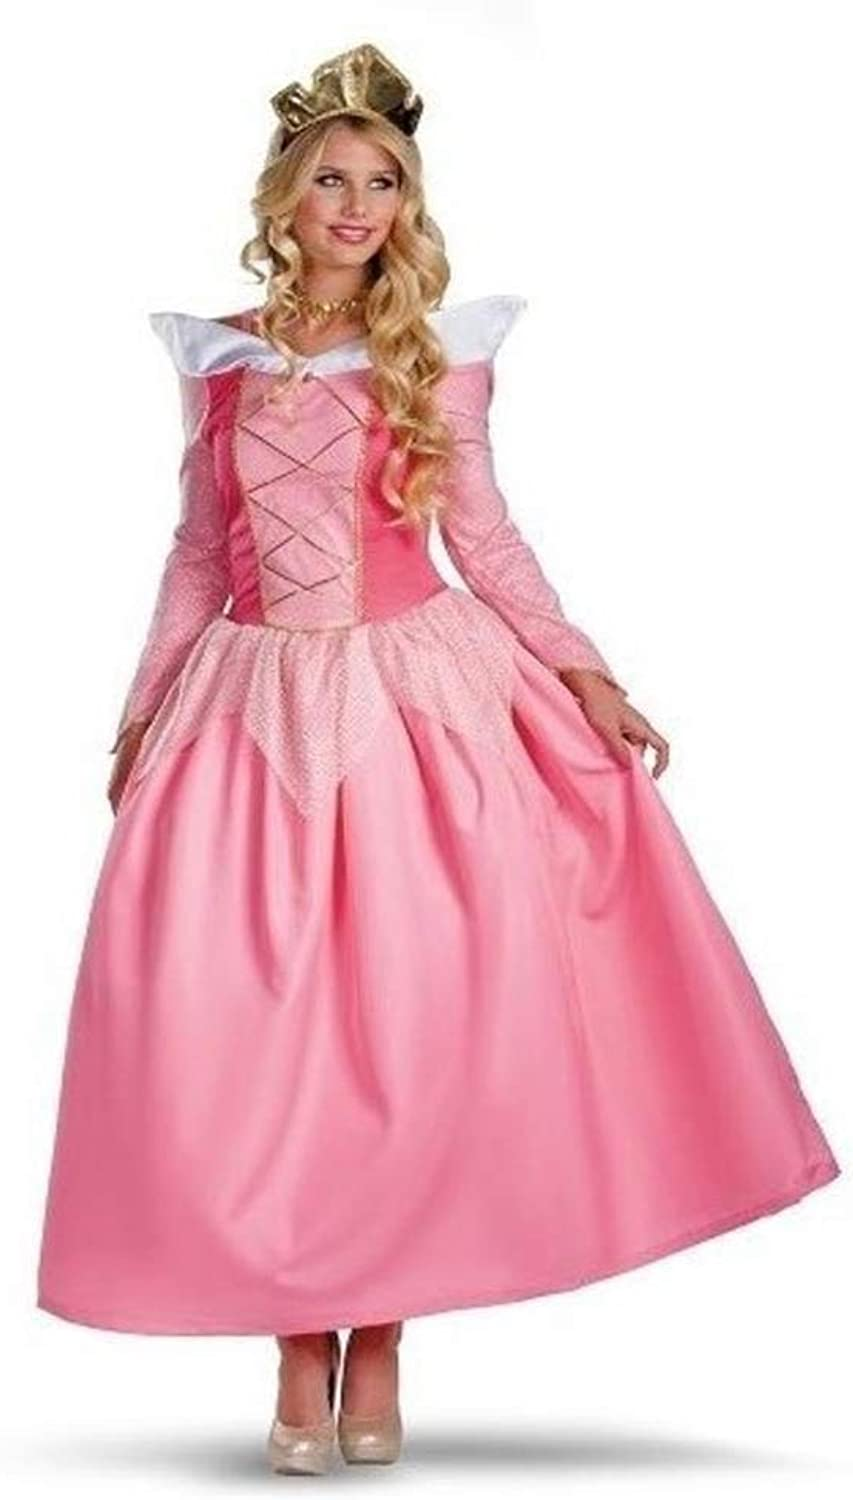 Shisky Cosplay Women's Clothing, Halloween Party Costume Role Play Pink Dress Queen Costume Stage Costume